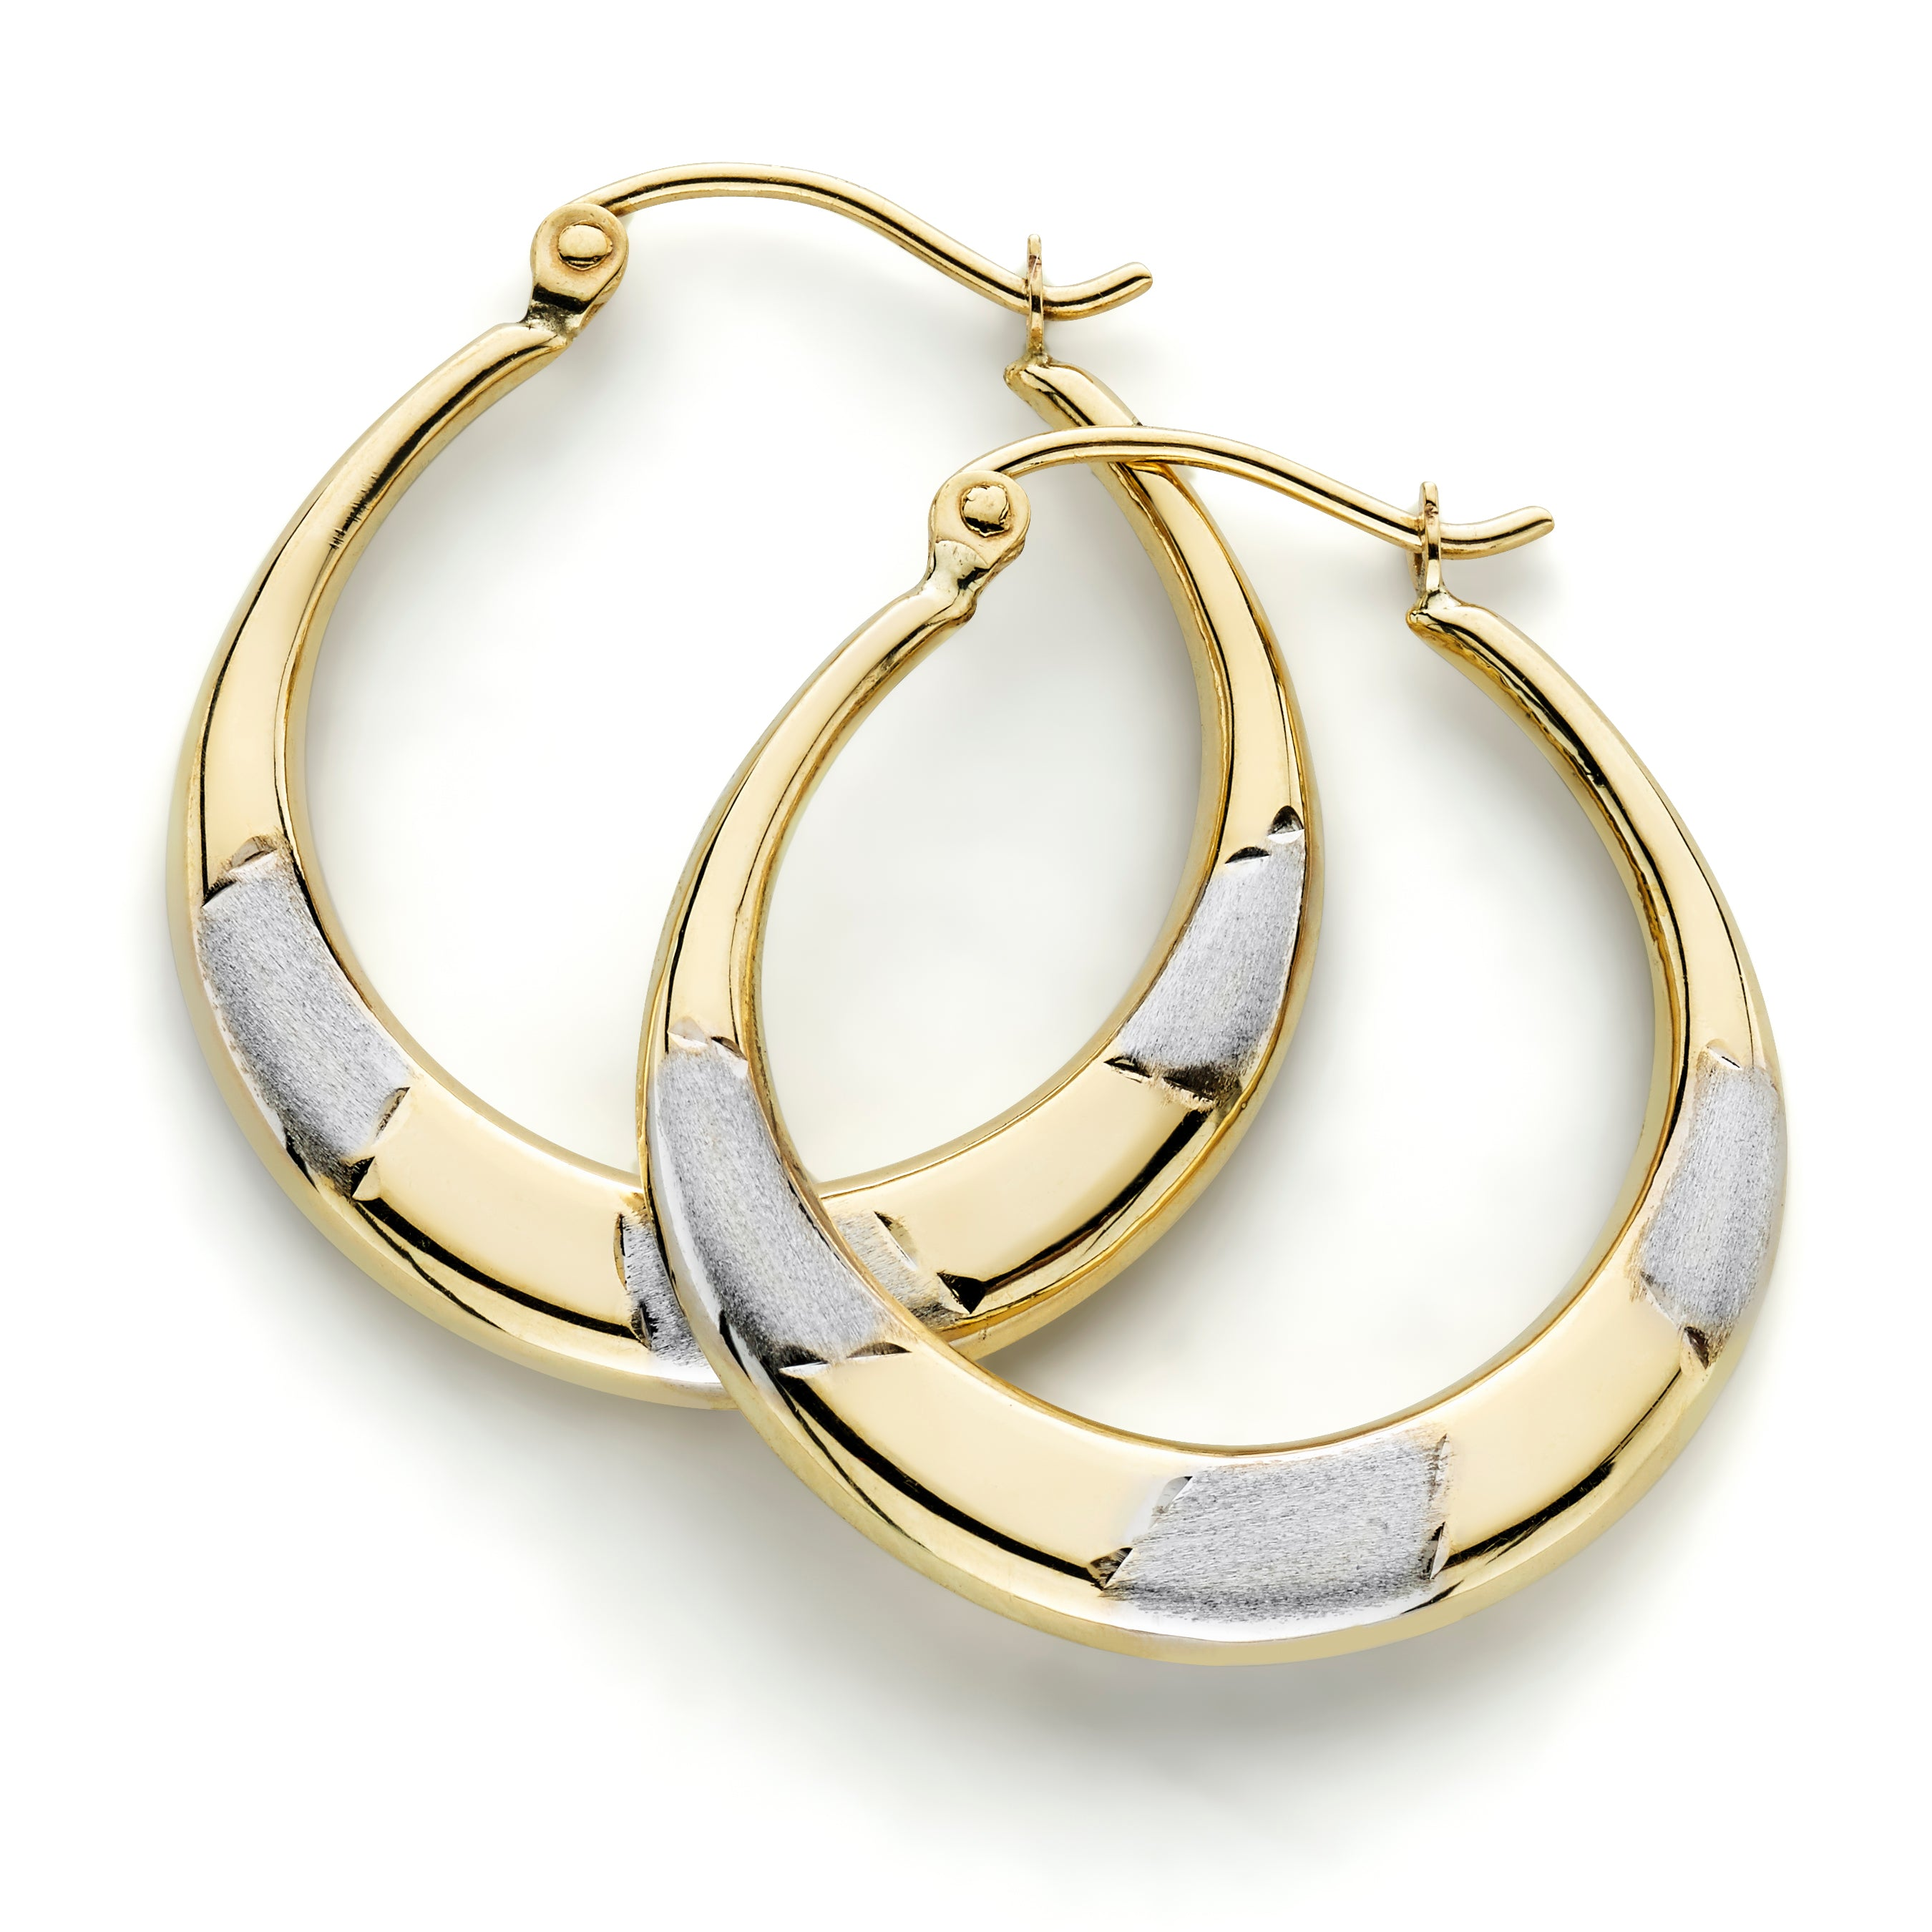 gold graduated p prod qlt hoop resin hei wid earrings